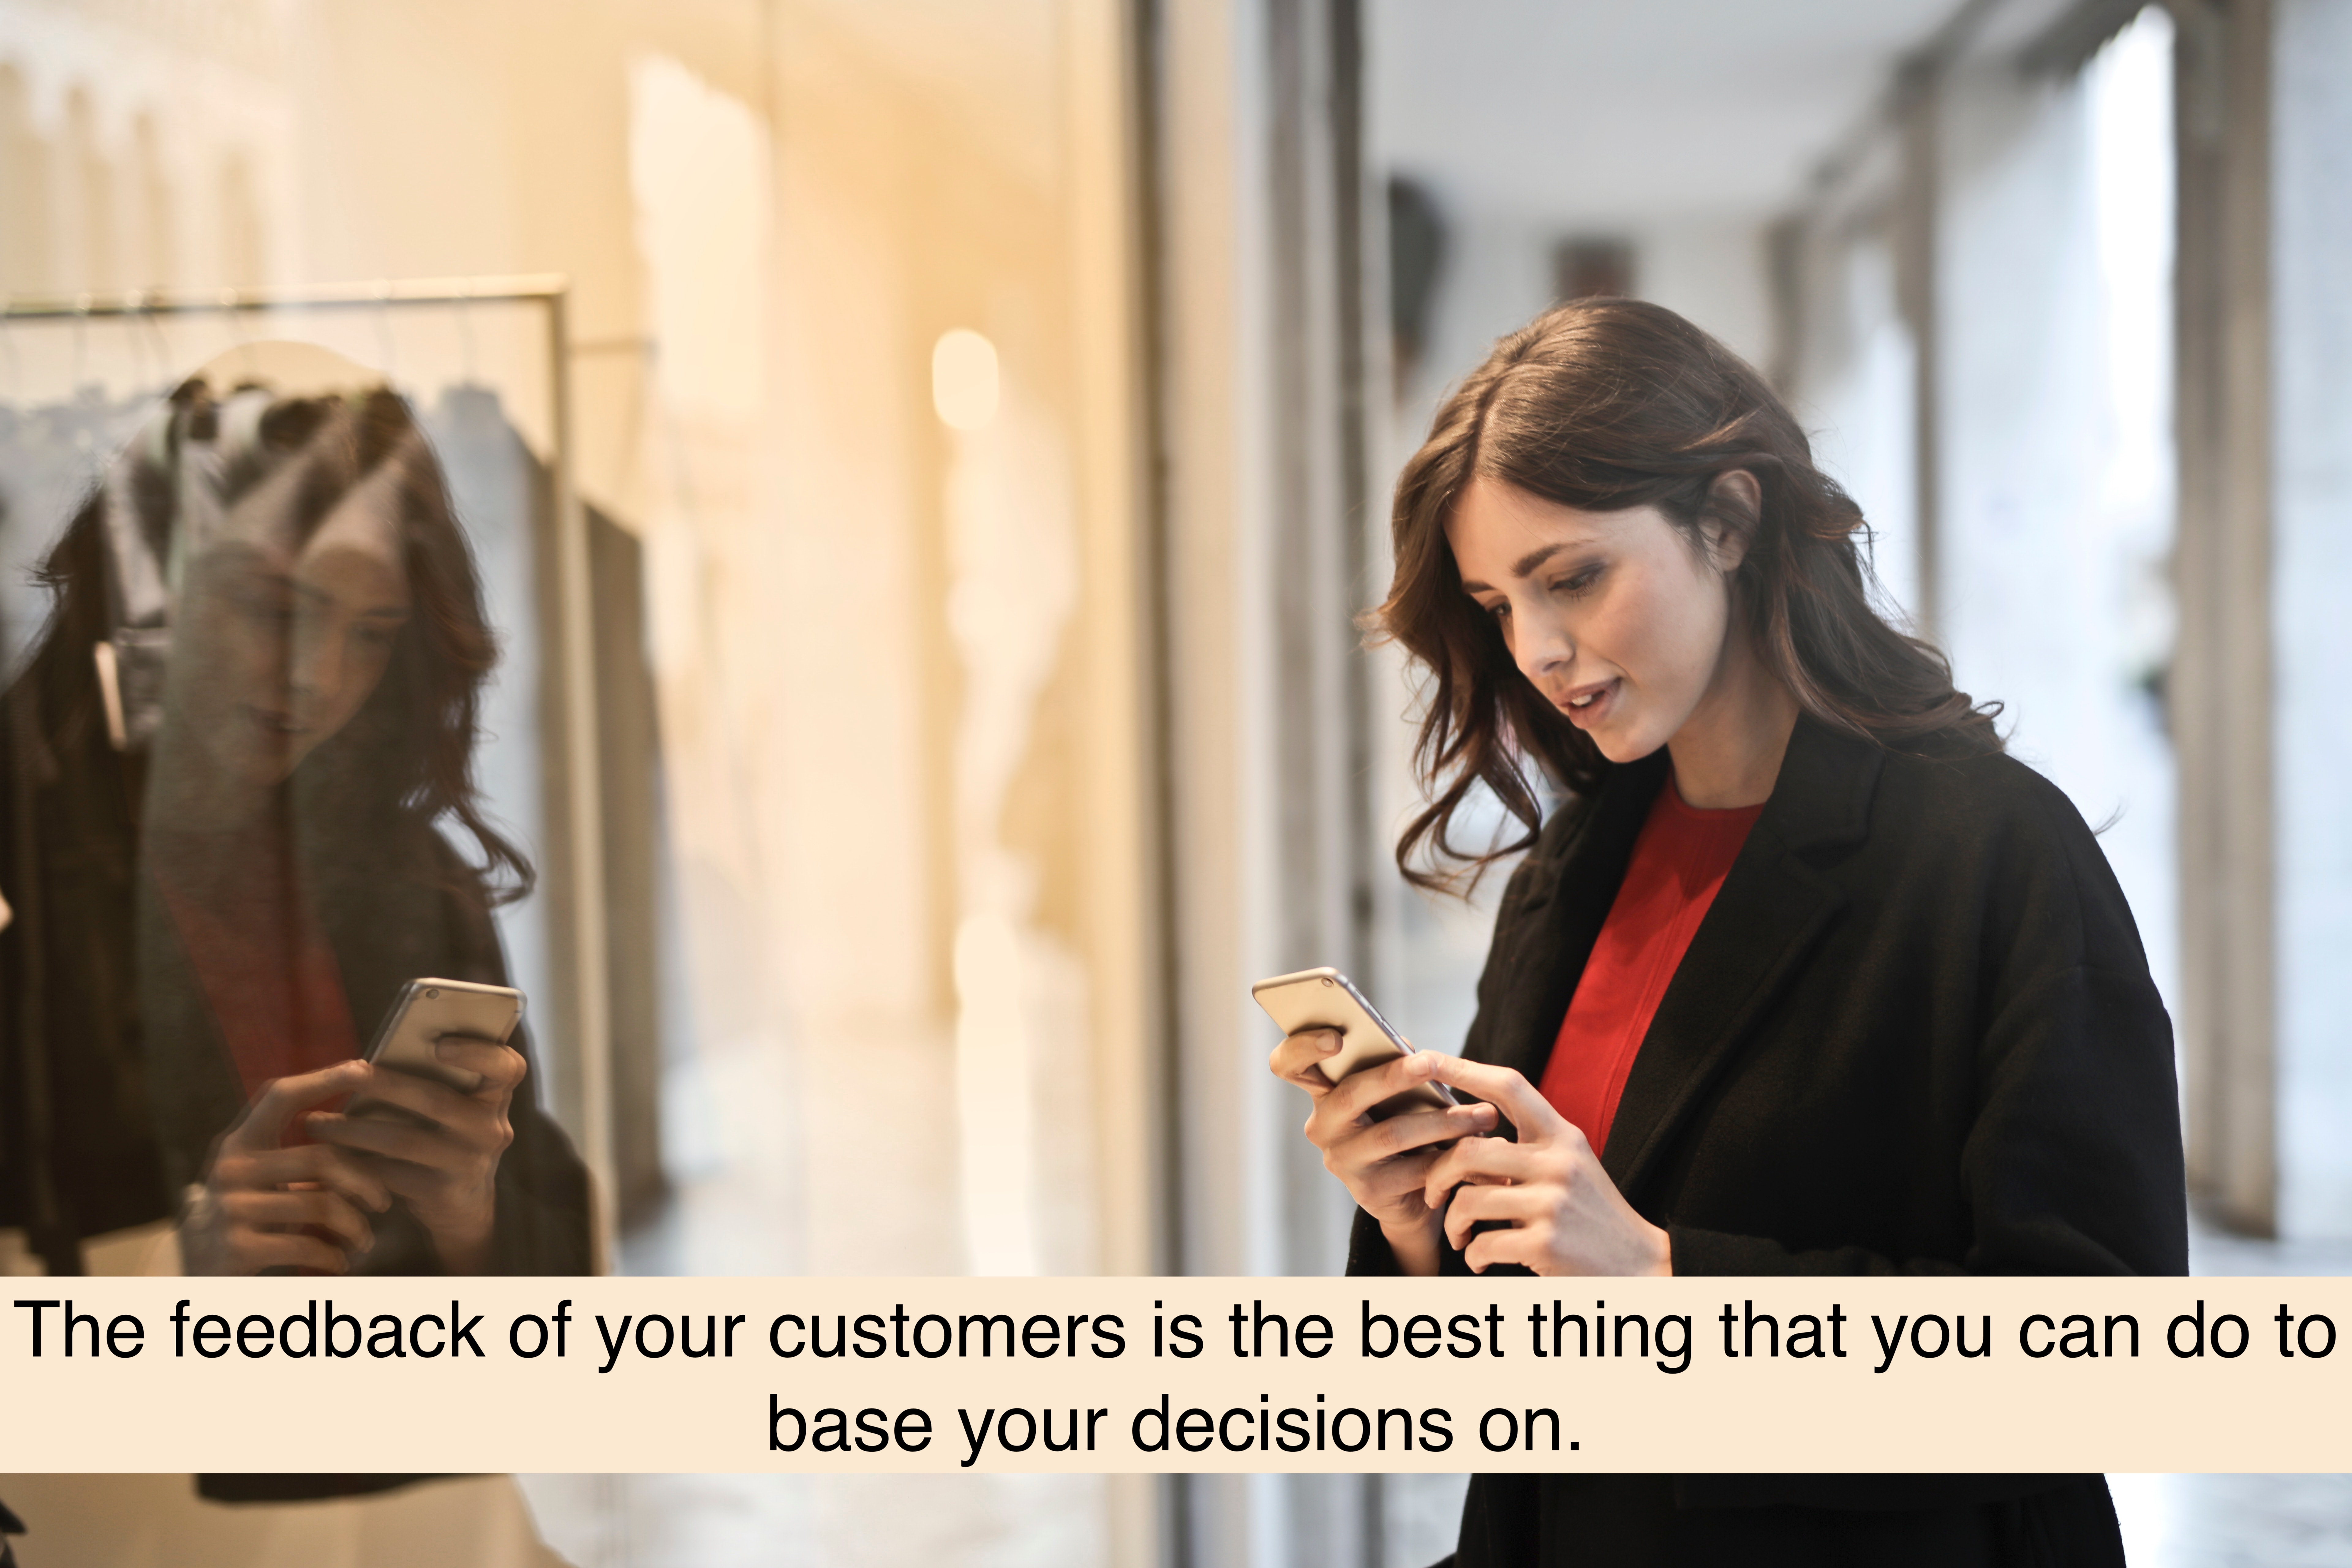 The feedback of your customers is the best thing that you can do to base your decisions on.